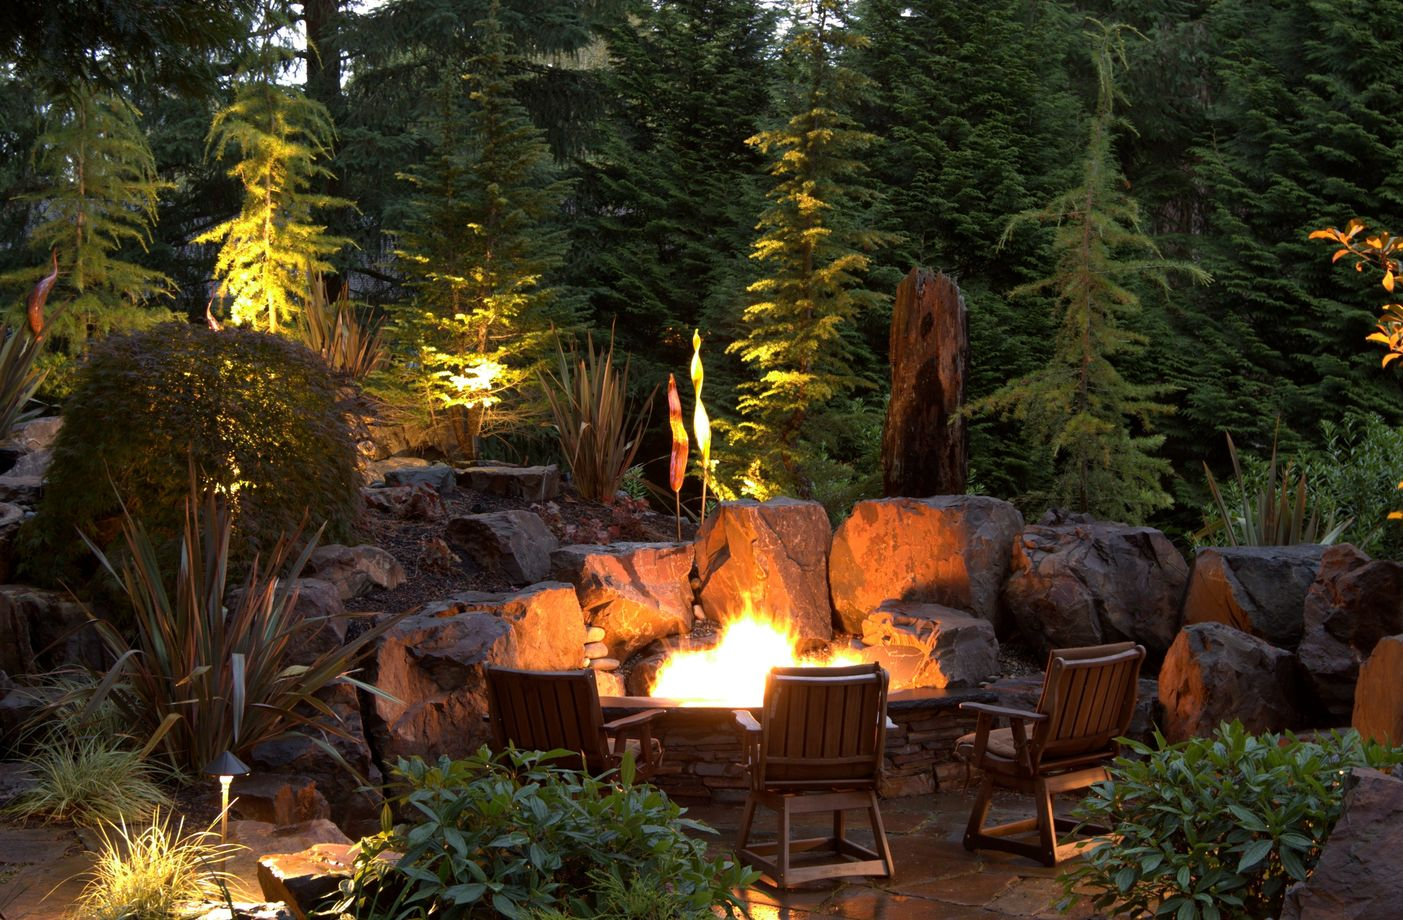 15 Fire Pit Ideas To Keep You Cozy Year Round on Garden Ideas With Fire Pit id=99659